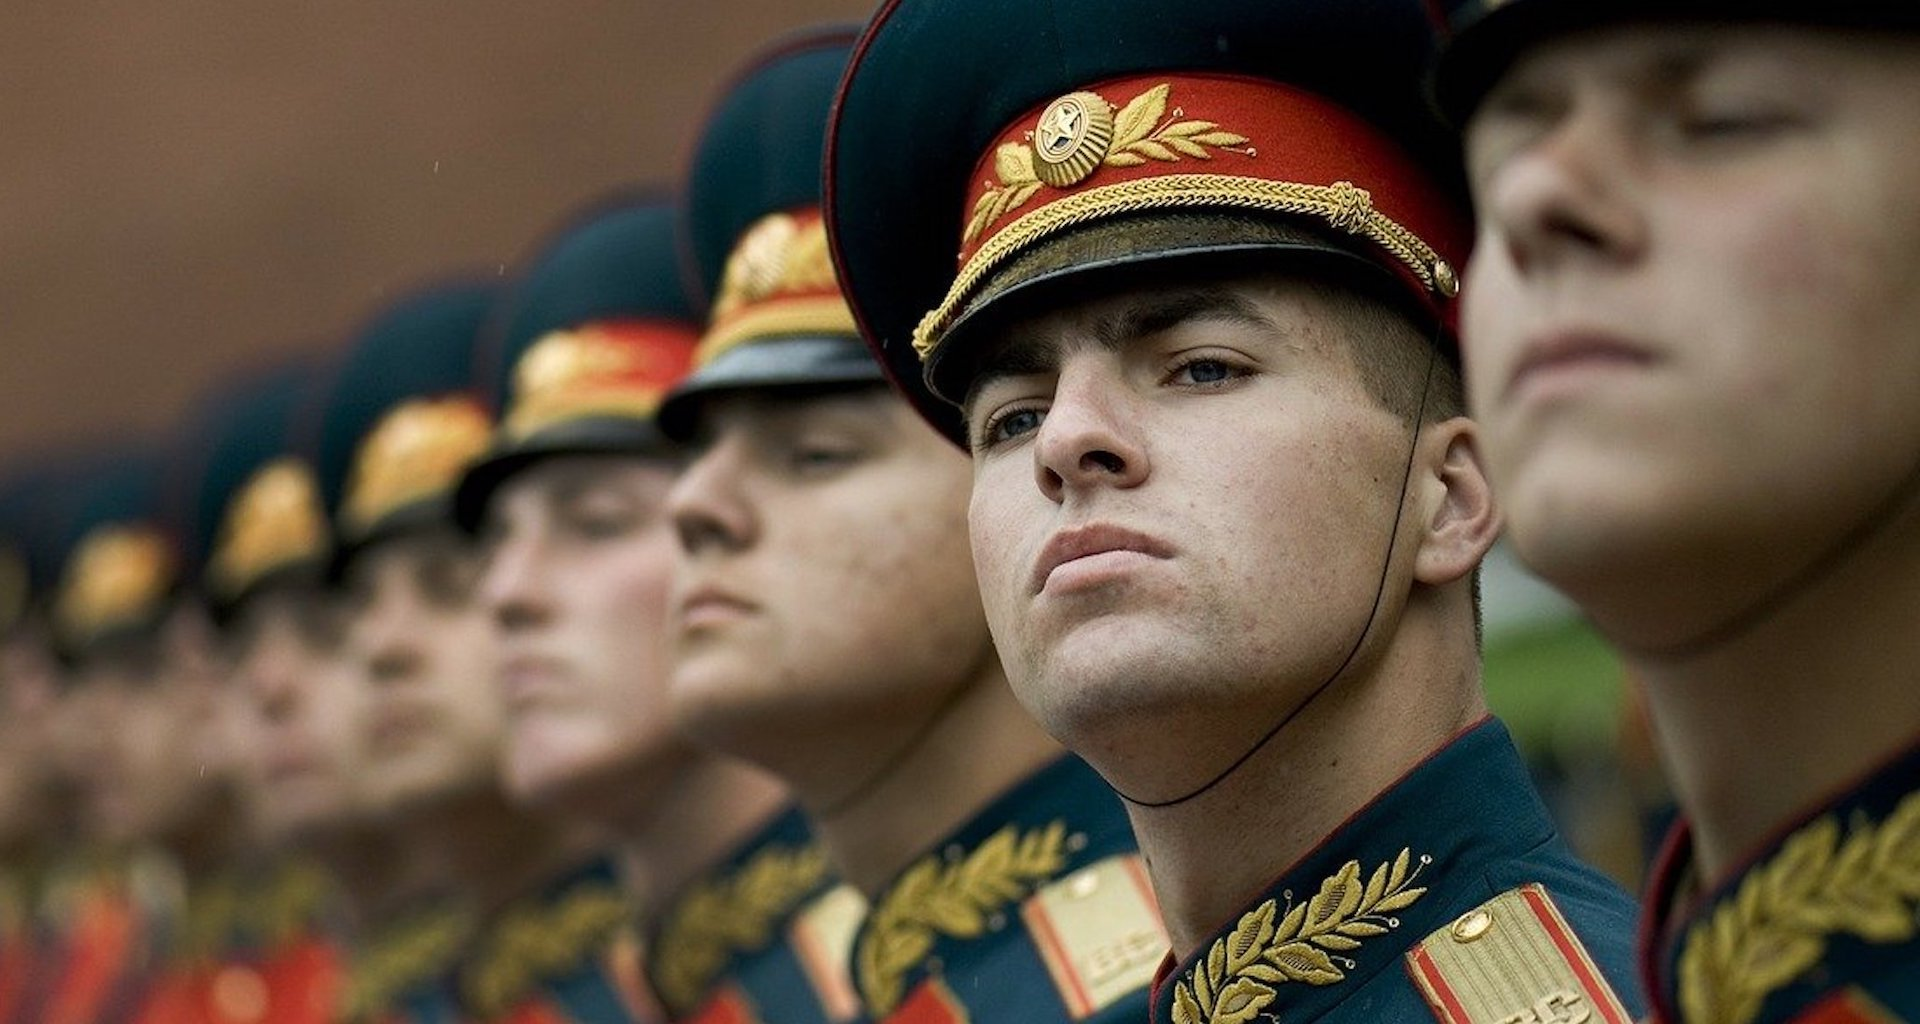 Russia's youth is tired of lavish military parades. Could digital culture change the country's wartime pageantry for good?